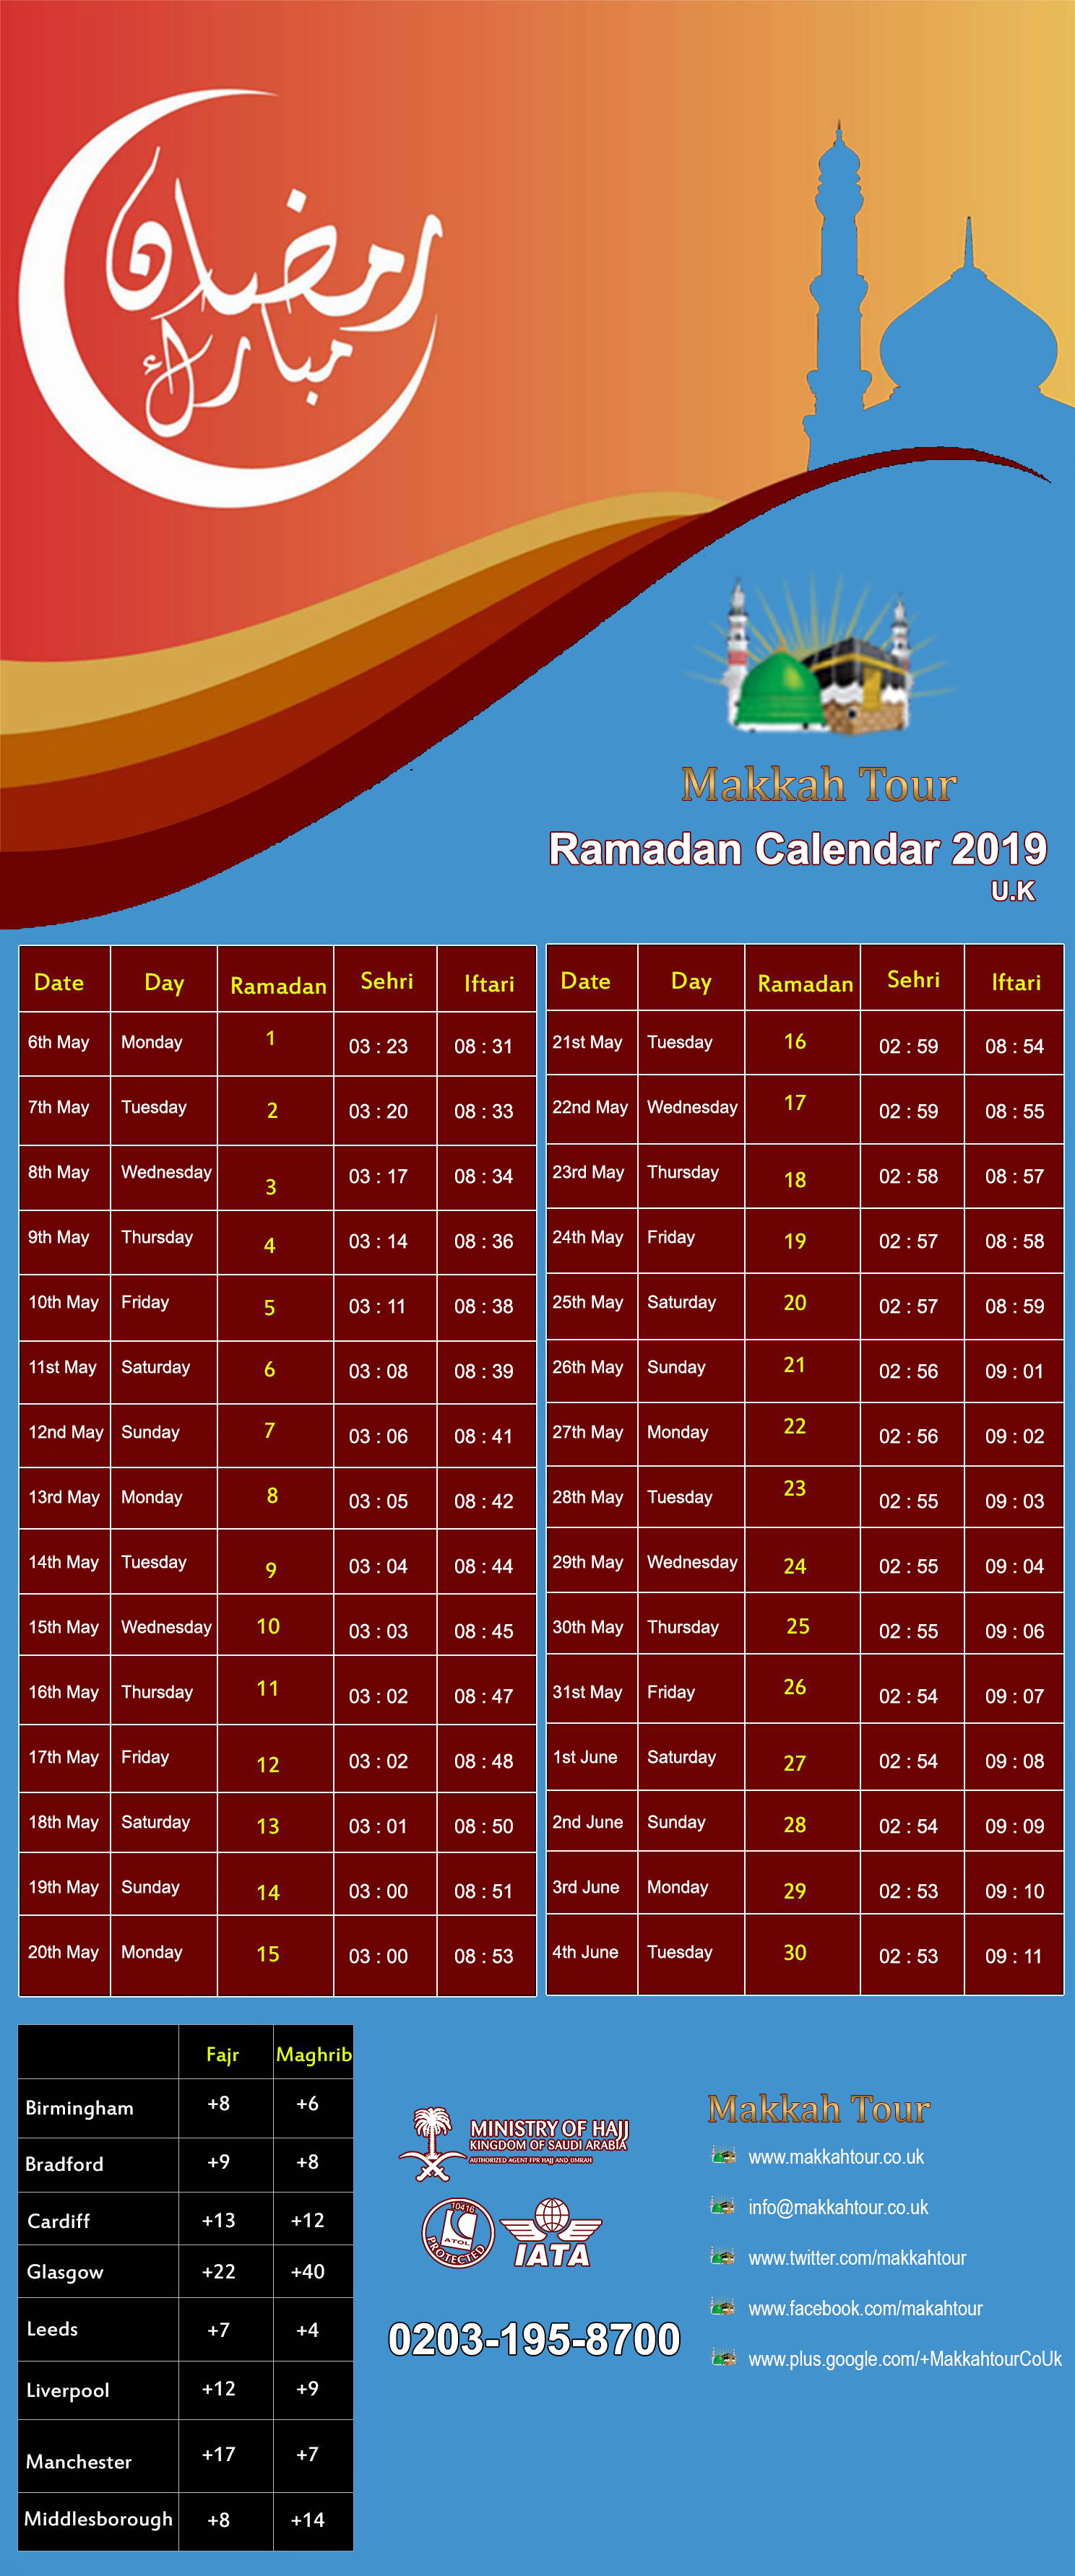 Ramadan timetable for London